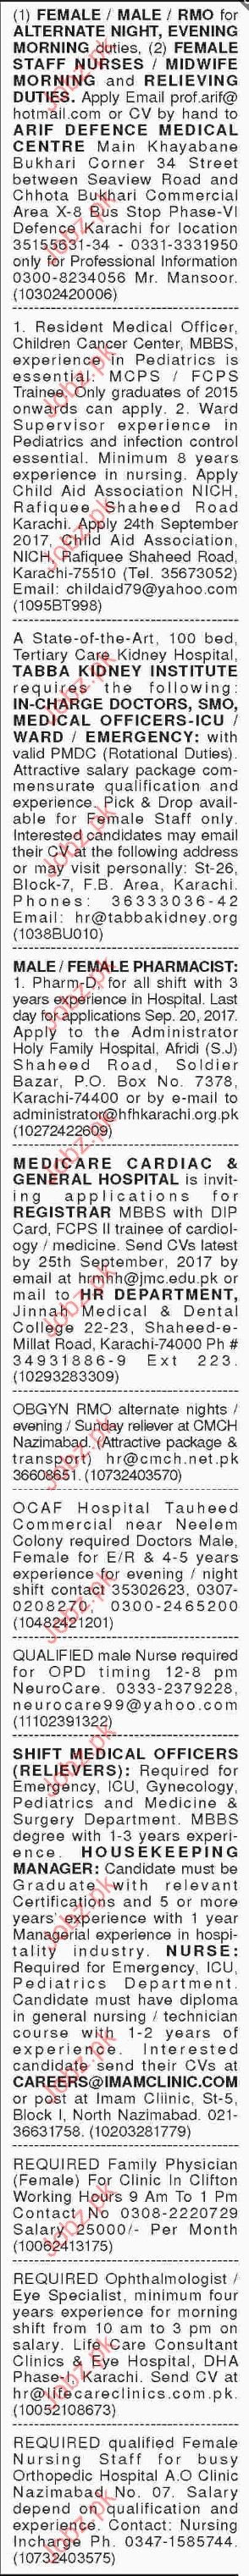 Medical Staff Required